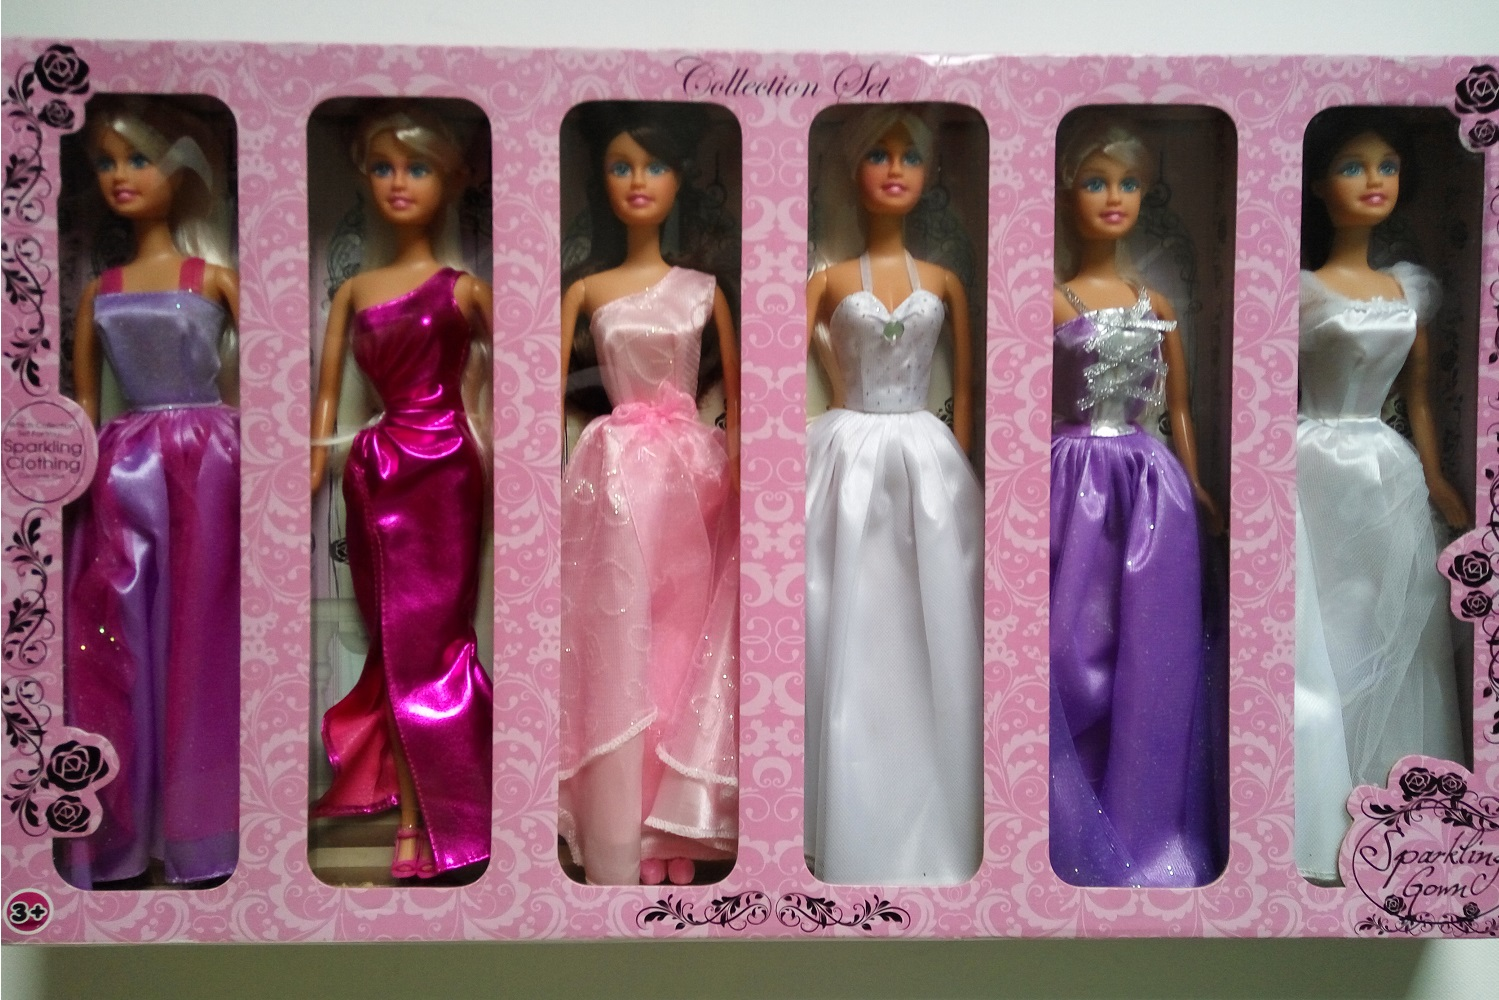 Sparkling Gown Clothing Collector Barbie panenky sada 6 kusů